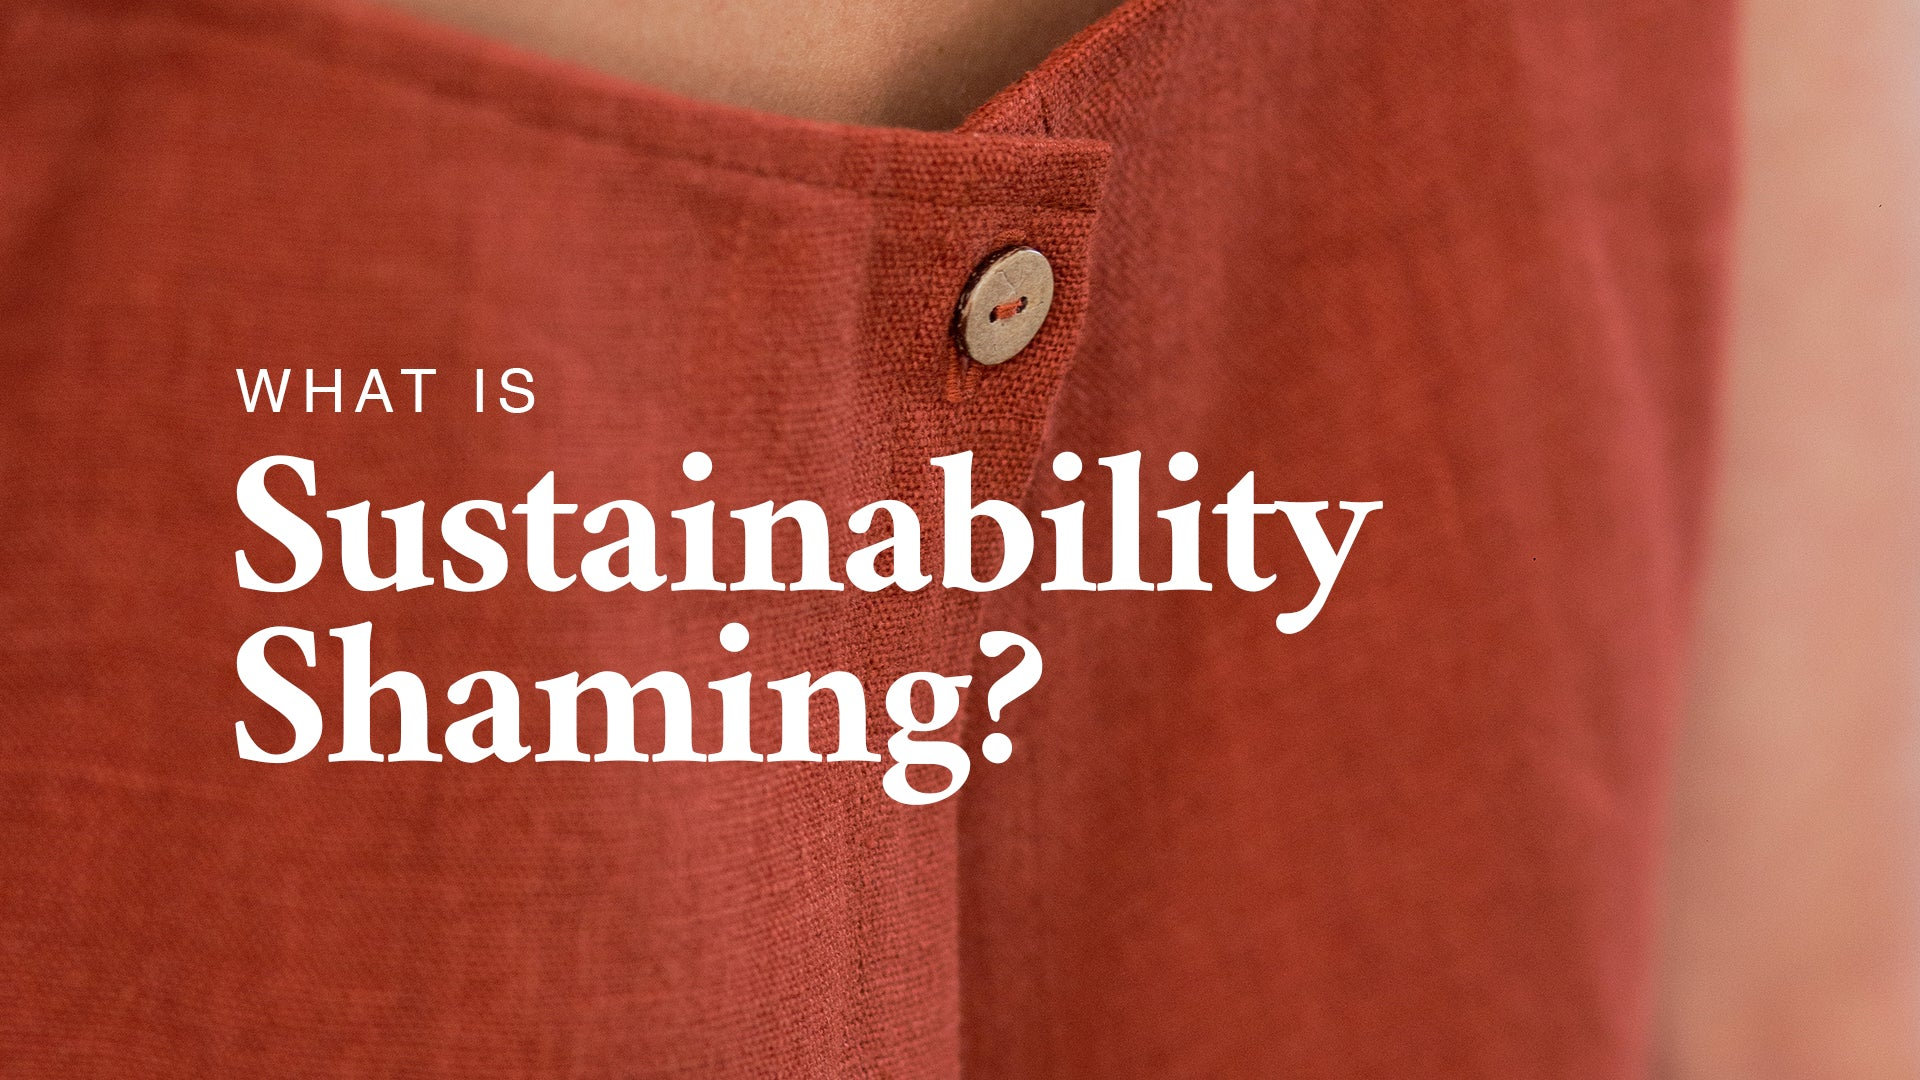 """What is Sustainability Shaming?"" - Courtney Hilley Blog Title, Overlaid on Photo of Rust Linen Top"